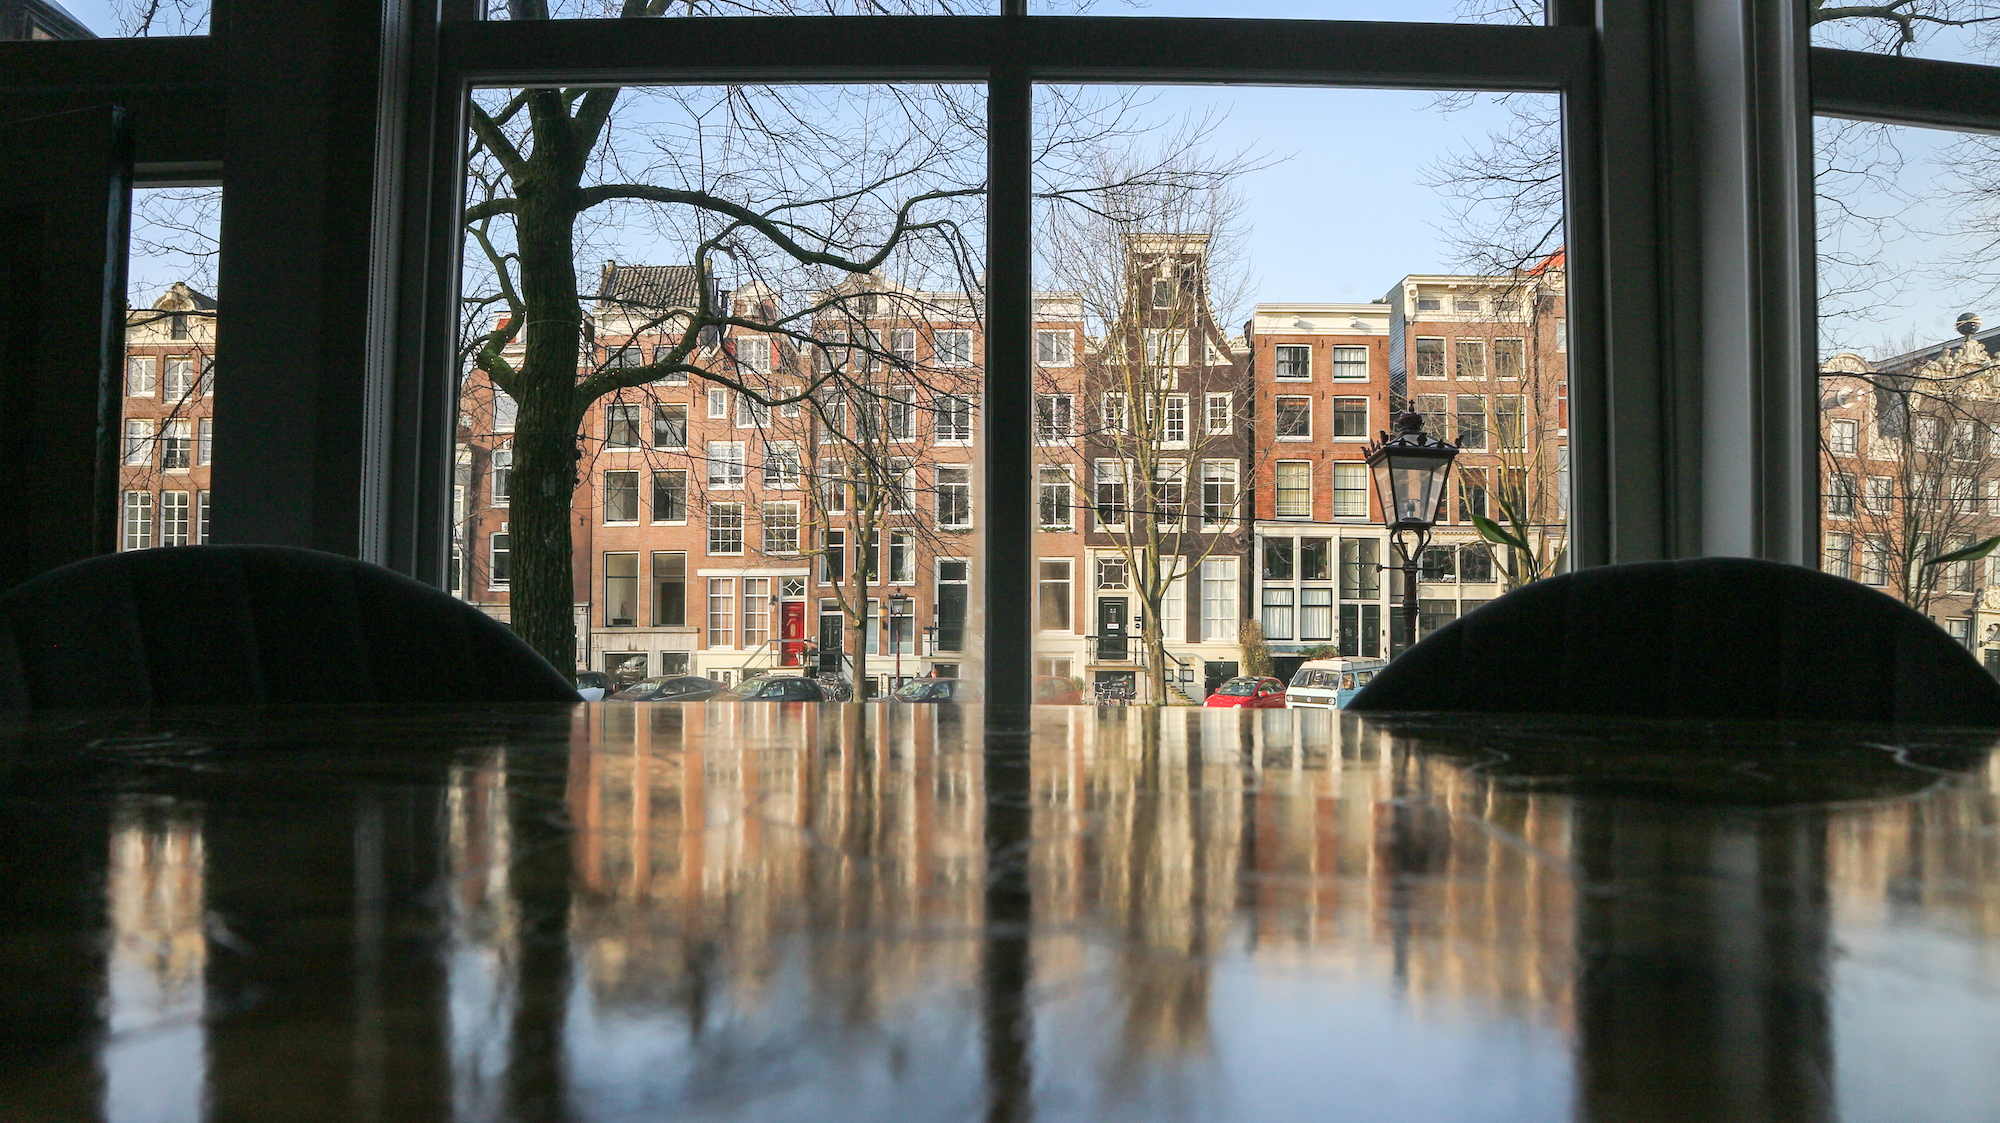 vergader of trainingslocatie de Singel Amsterdam